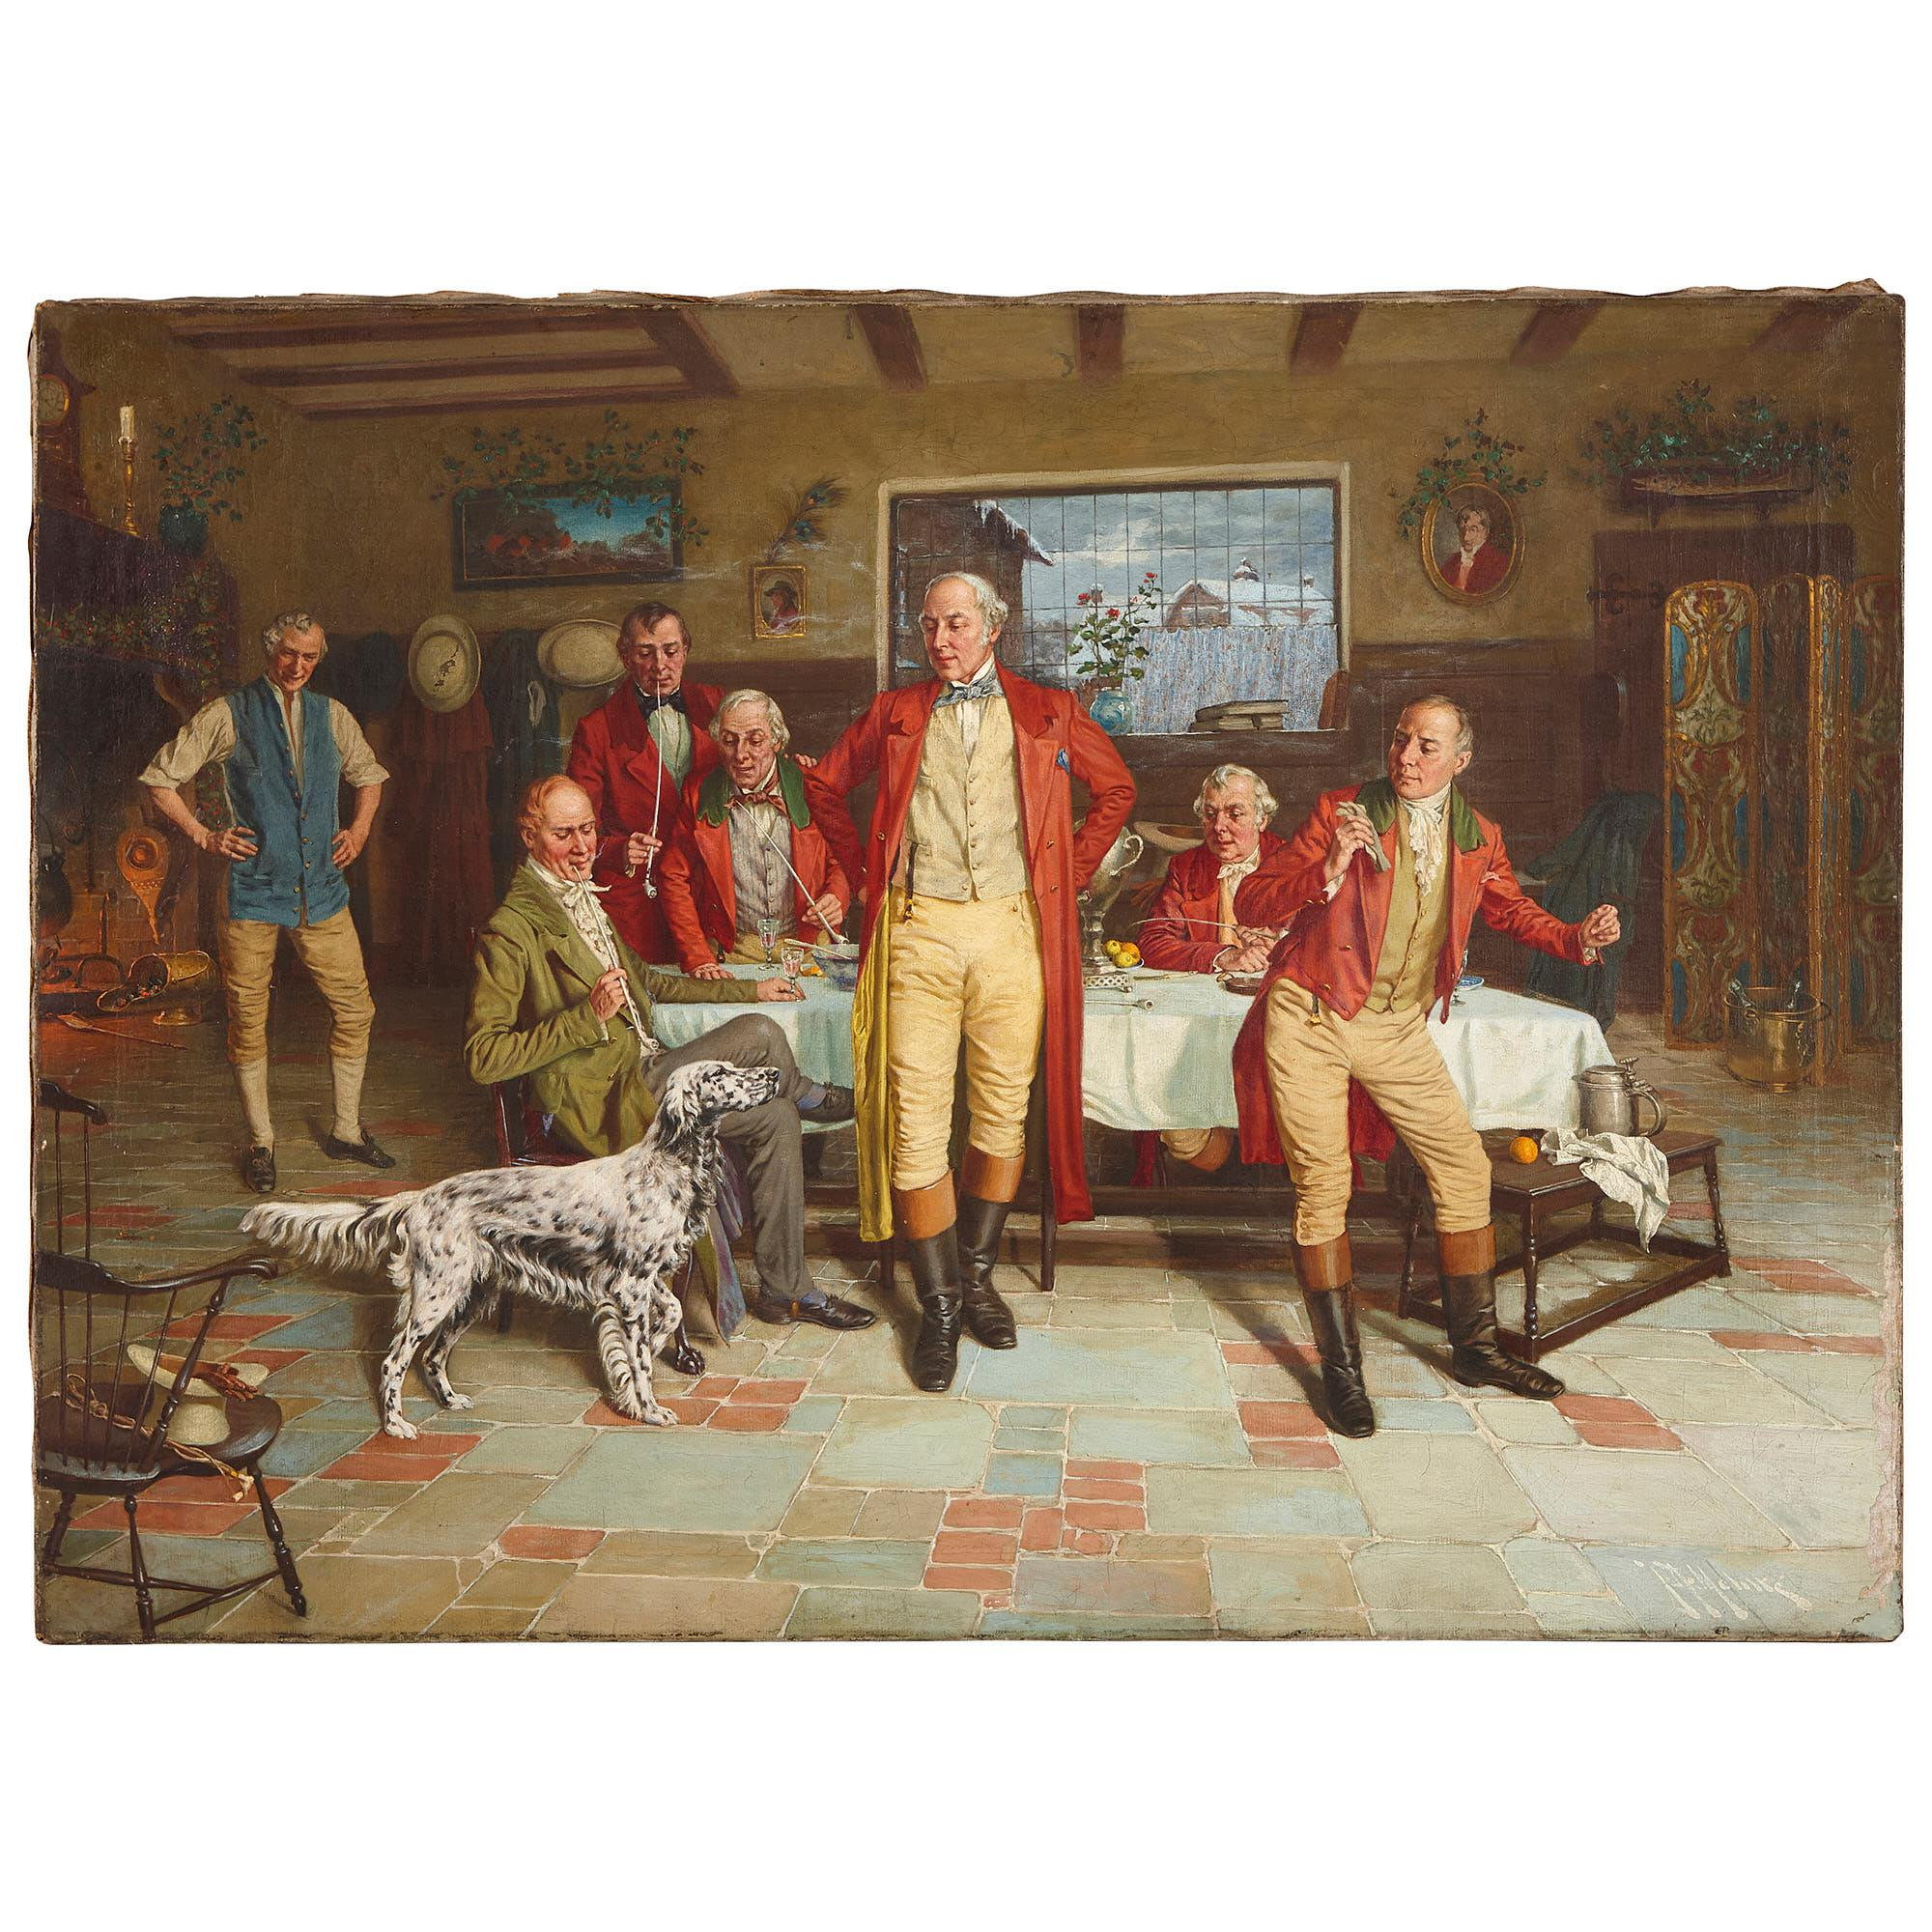 Group portrait painting after the hunt, oil on canvas